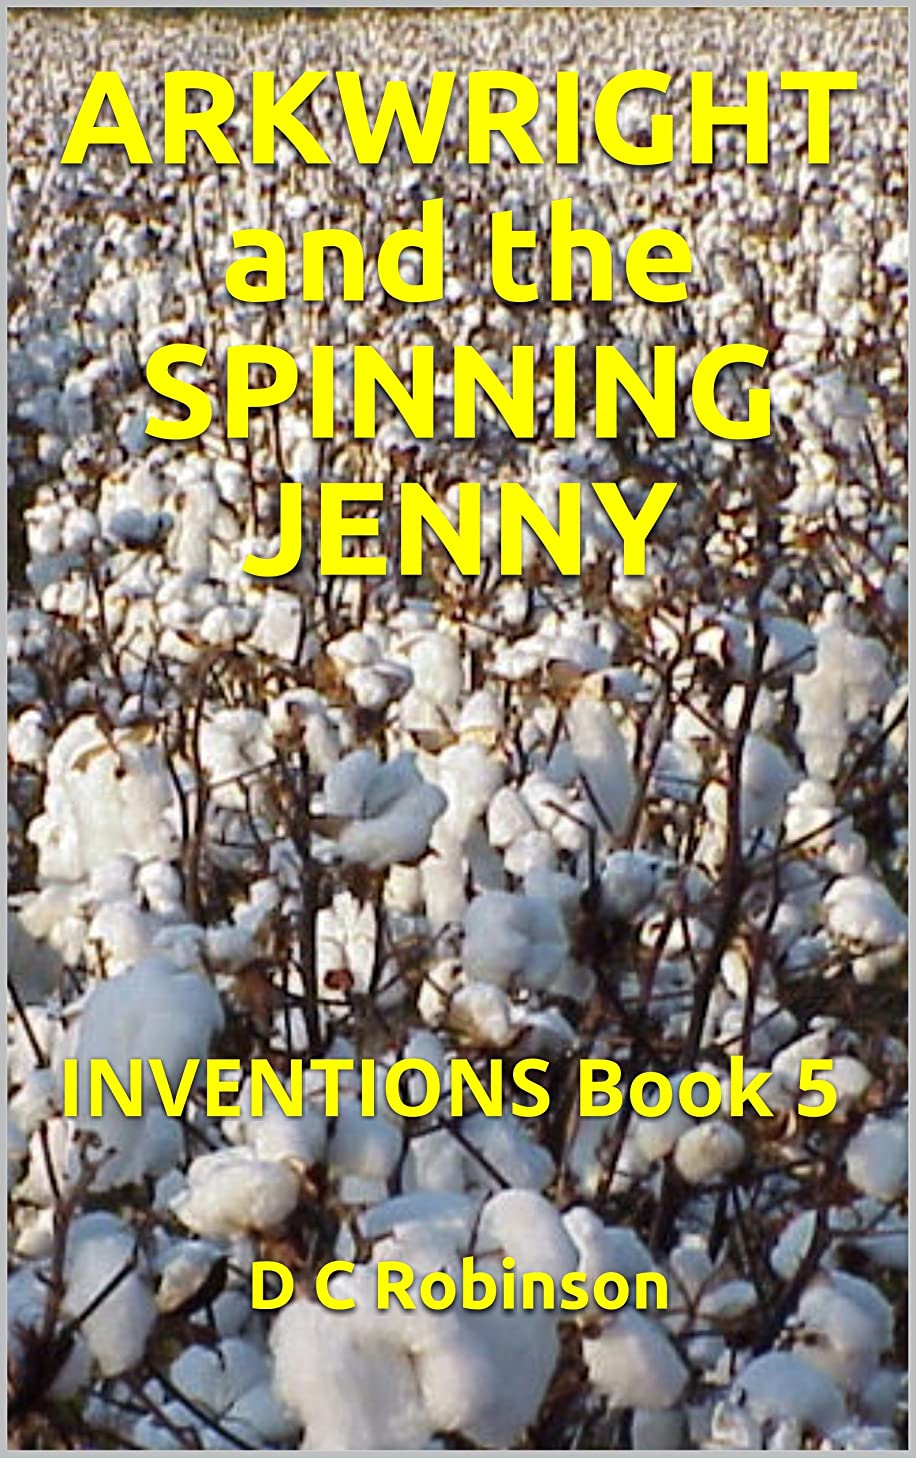 ARKWRIGHT and the SPINNING JENNY: INVENTIONS Book 5 (English Edition)